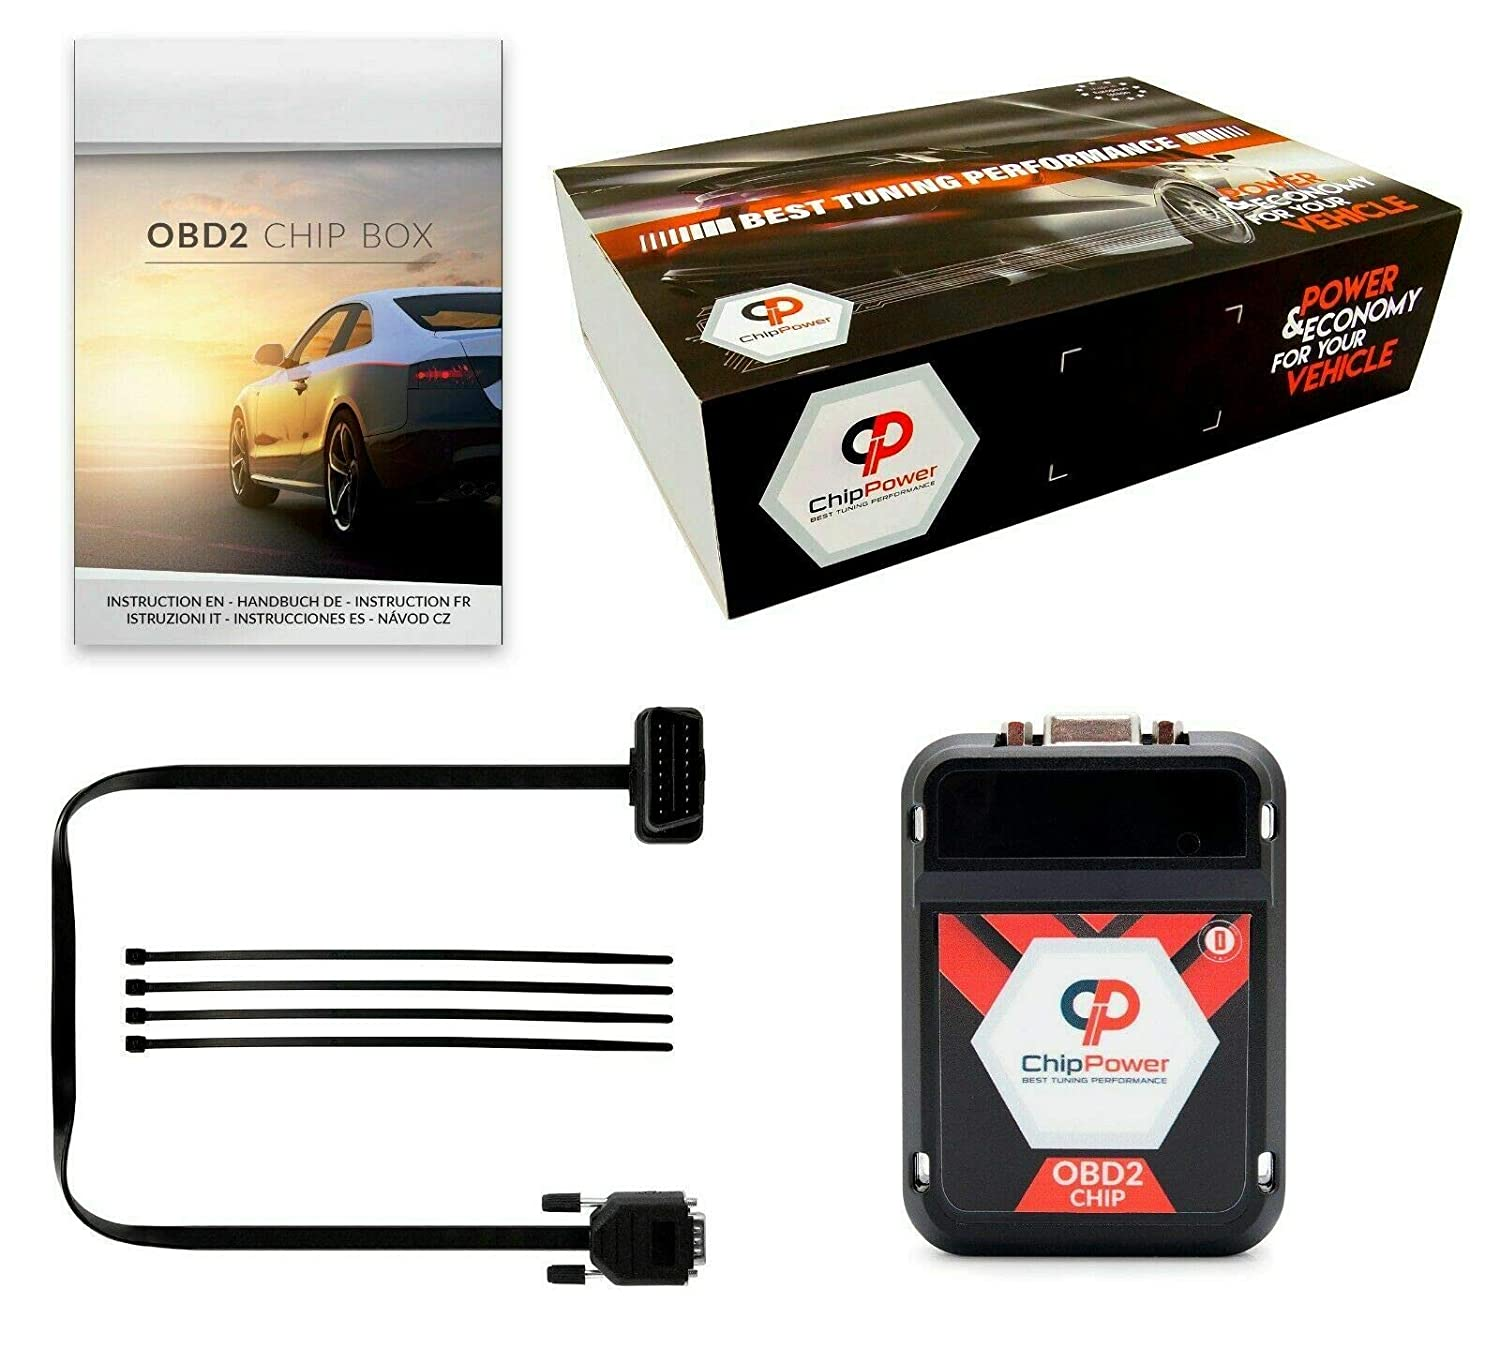 Chiptuning ChipPower OBD2 v3 f/ür Giulia 2.2 D 209PS 2015 Chip Box Tuning Diesel